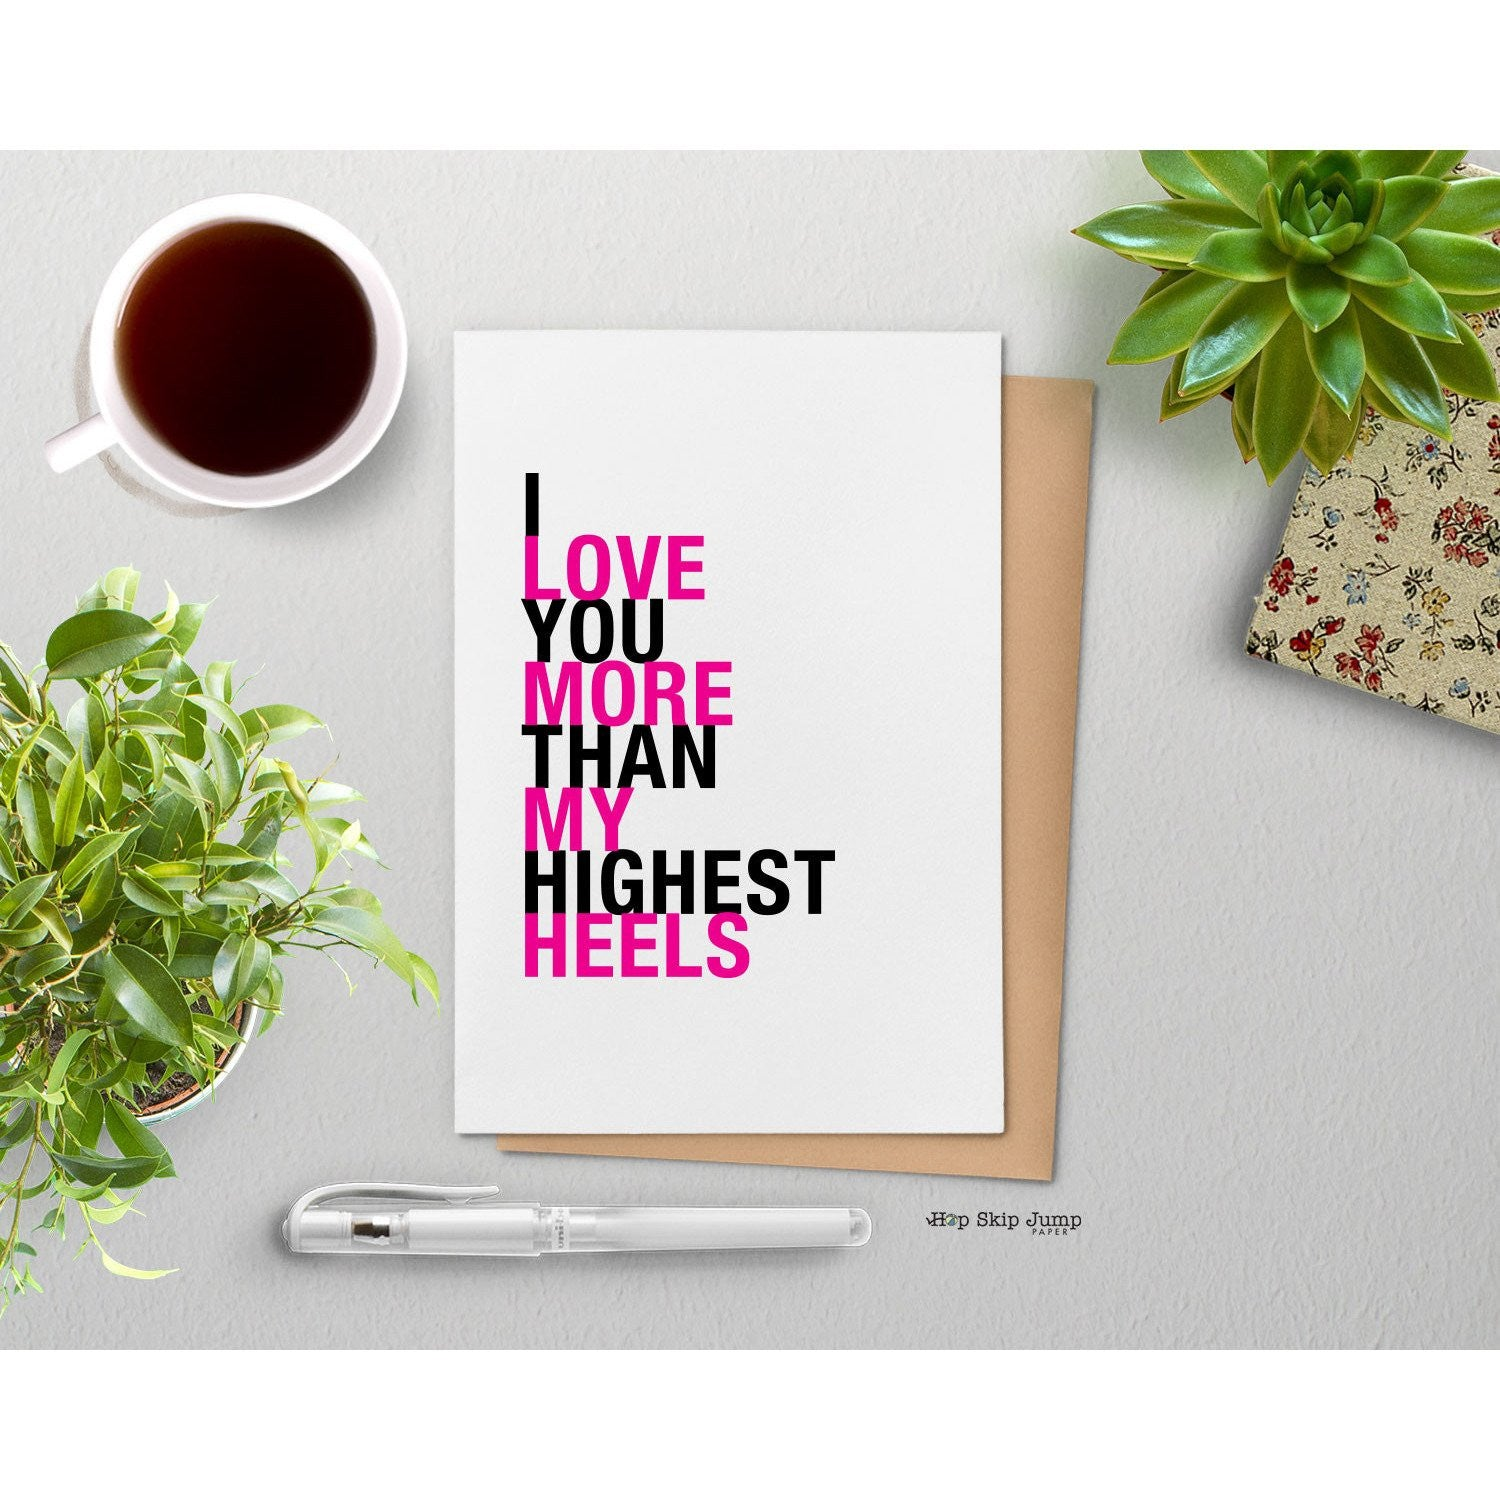 I Love You More Than My Highest Heels greeting card  - Shop Online